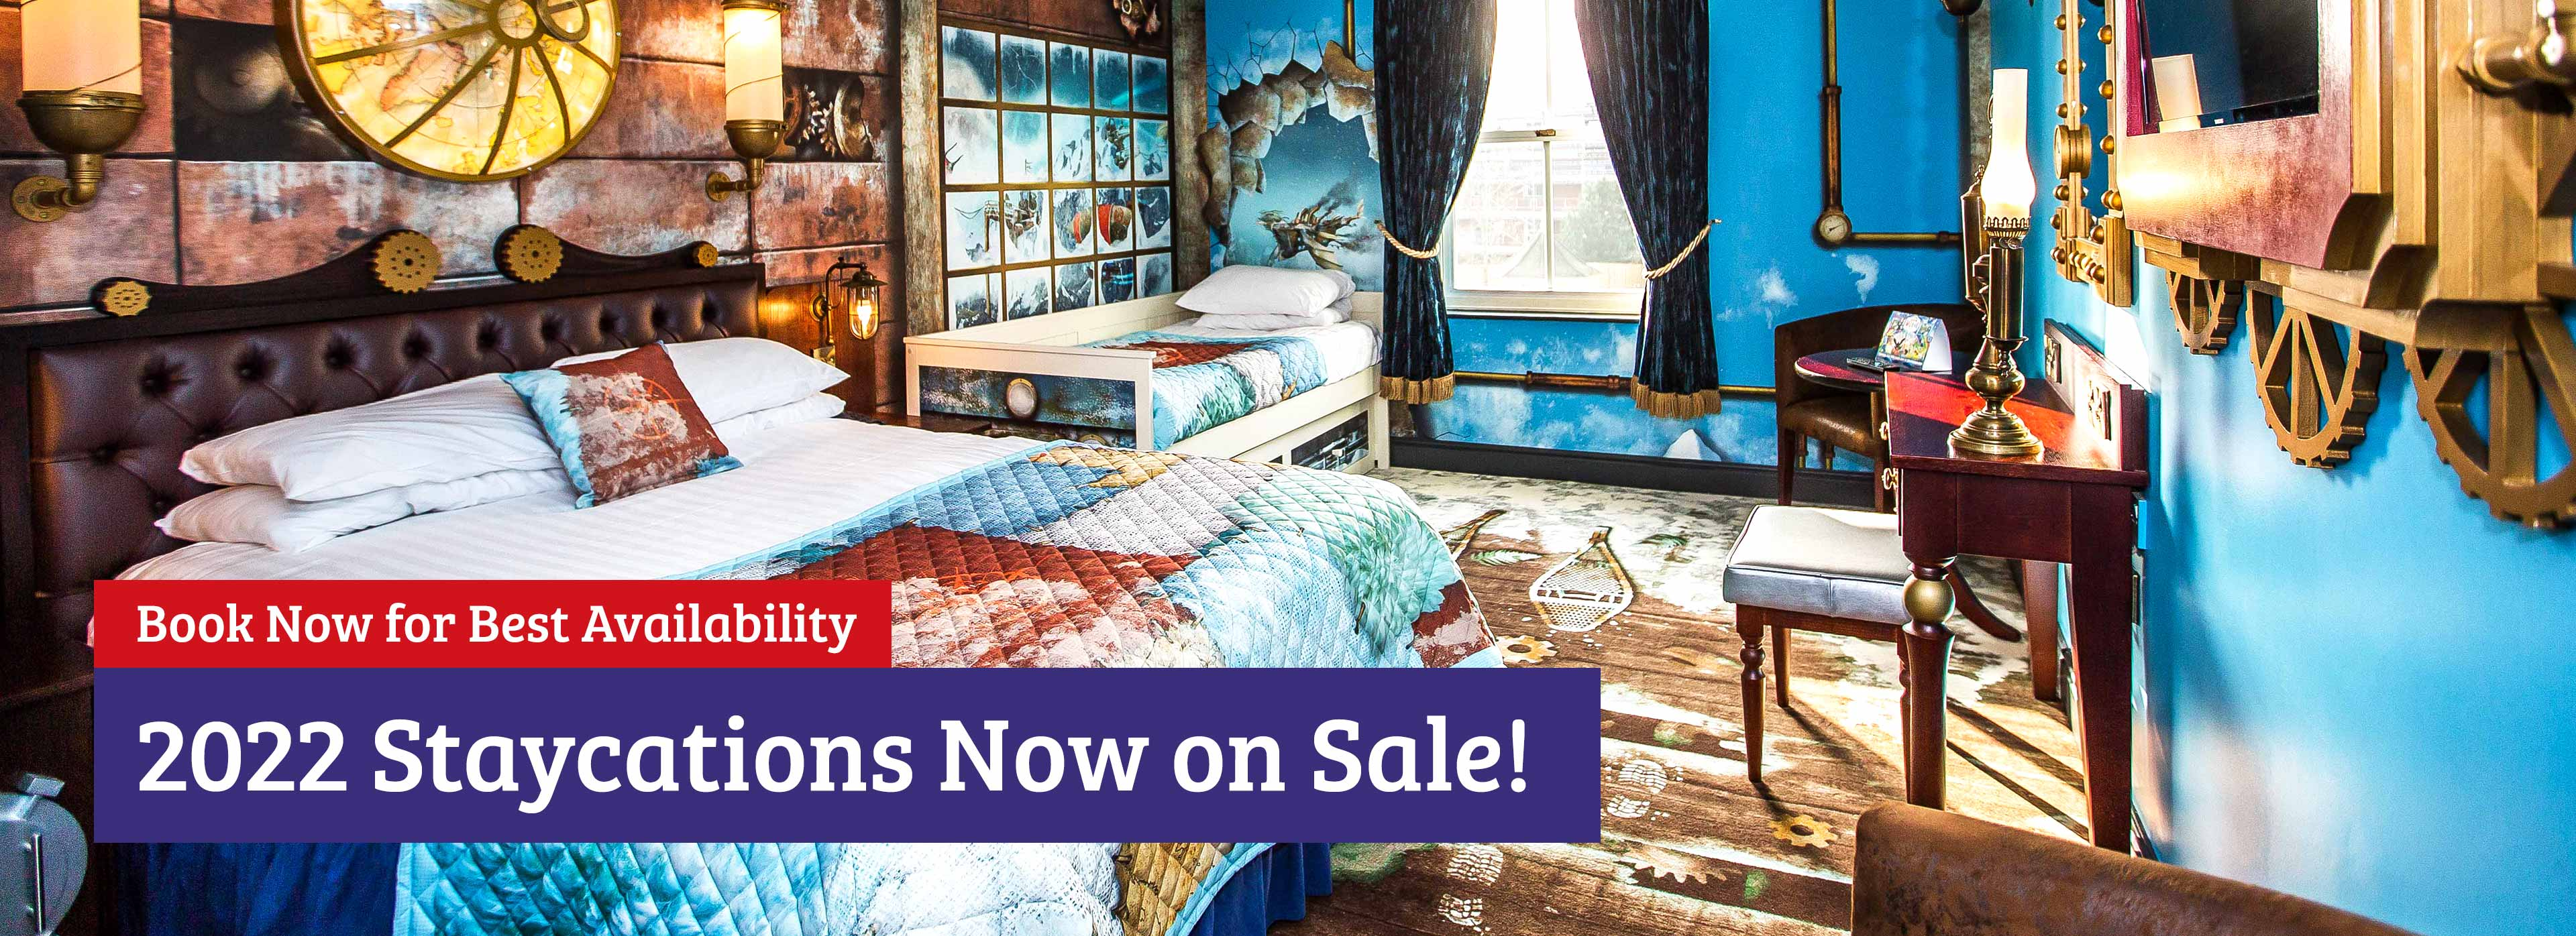 Book your 2022 staycation with Alton Towers Holidays